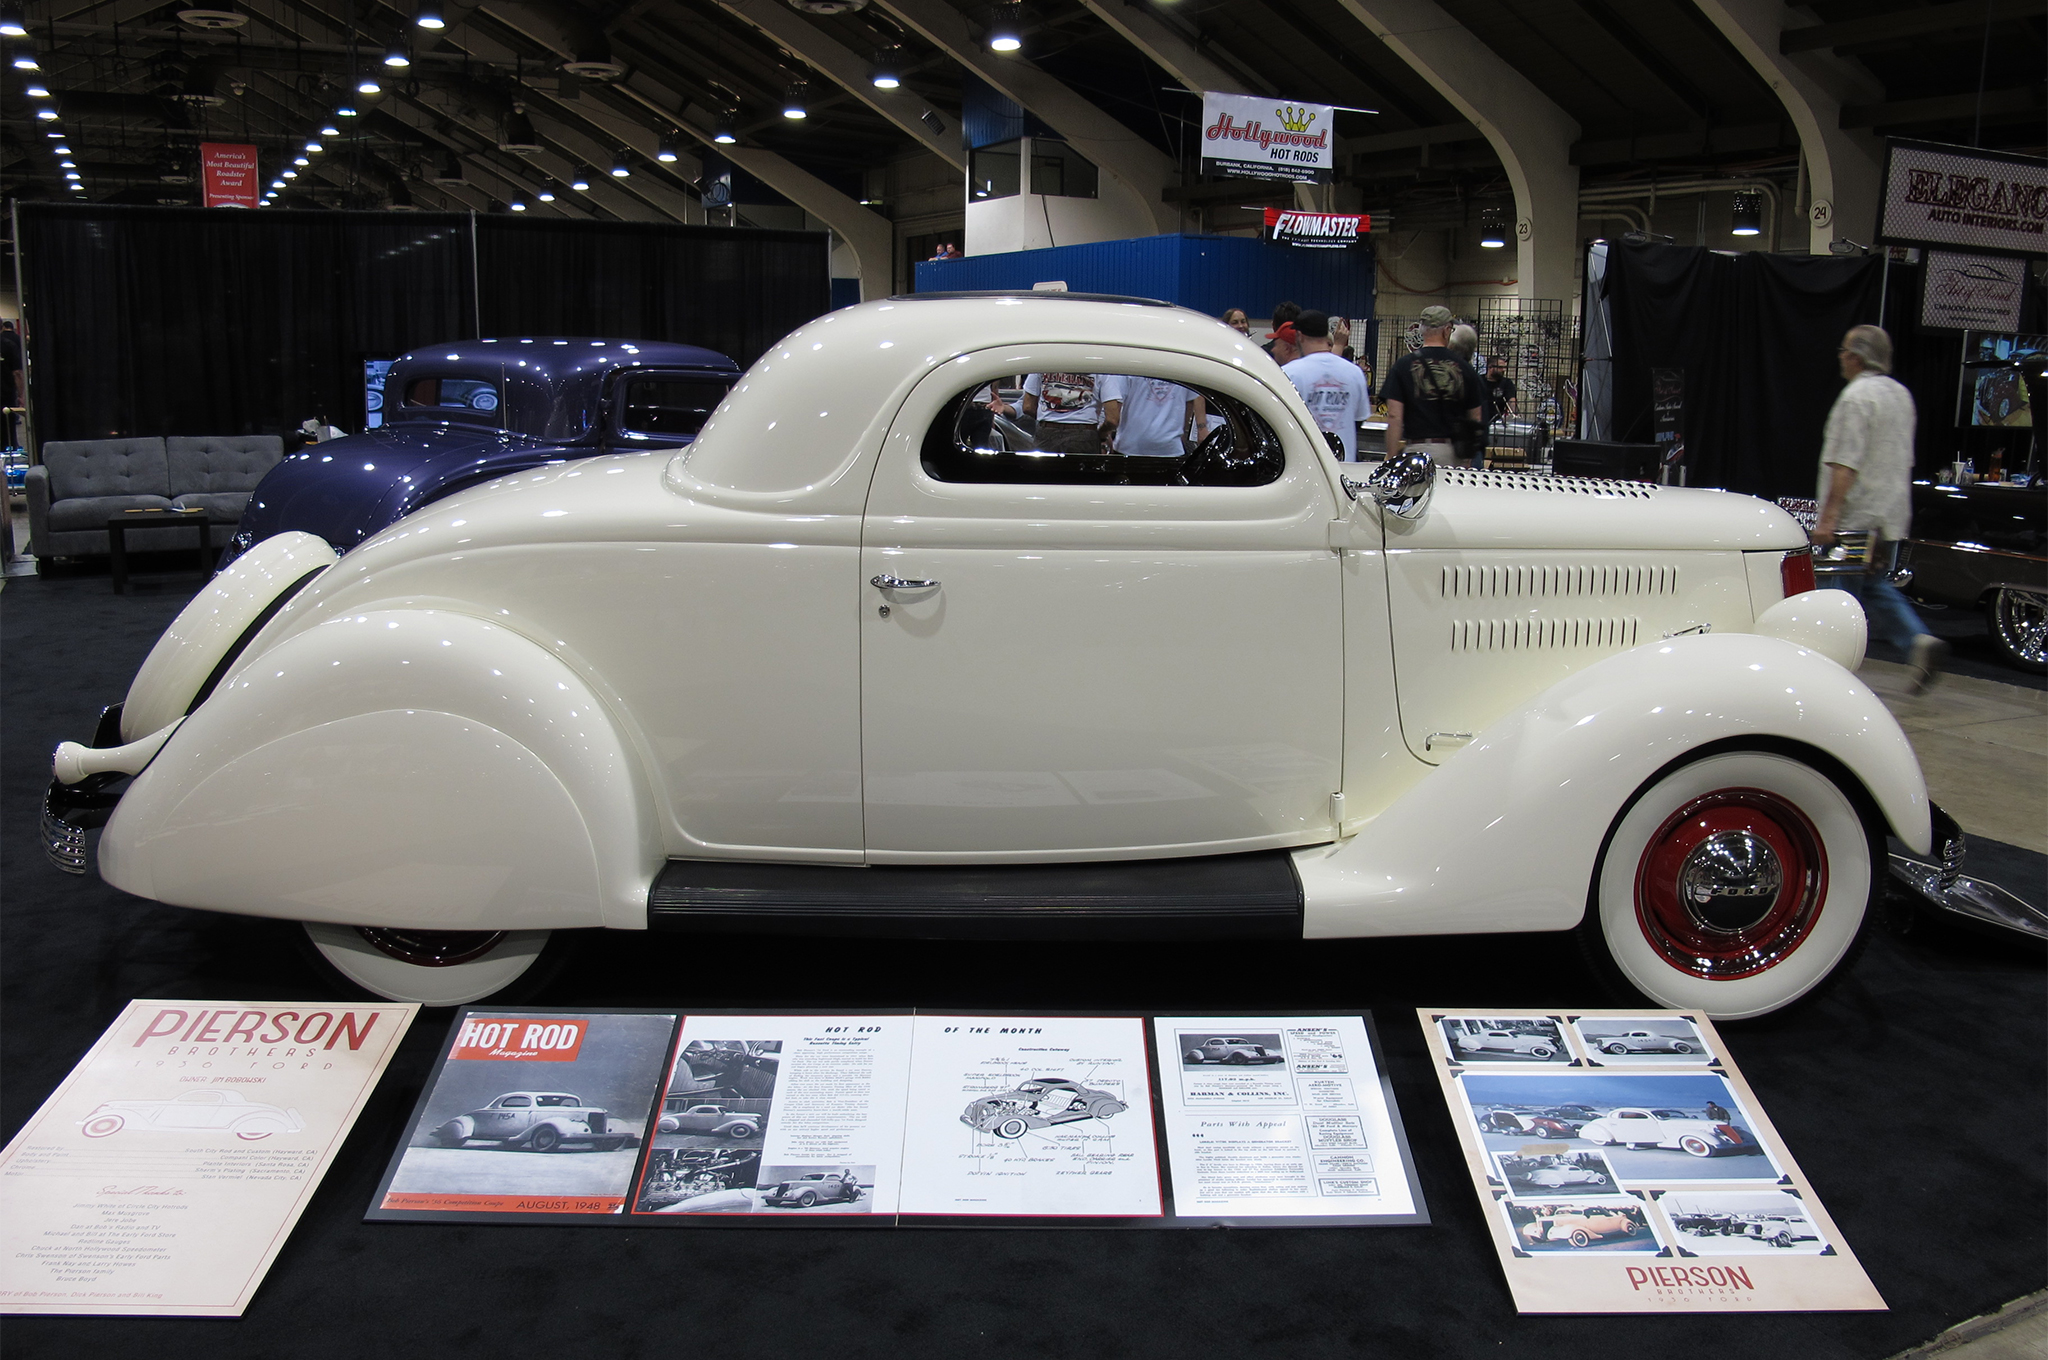 """Sharing space with most of the AMBR contenders in Building 4 was one of the most significant cars at the show, Jim Bobowski's '36 Ford coupe, which was originally owned by Bob Pierson and beautifully restored by South City Rod and Custom of Hayward, California. One of HRM's earliest cover cars (Aug. 1948), the coupe was Pierson's daily driver but also hit 117 mph on the dry lakes when it was featured as the magazine's """"Hot Rod of the Month."""" Later modifications, including a chopped top and belly pan, brought the car to 140 mph. The efforts of South City, which is owned by Bill Ganahl (son of longtime rodding journalist Pat Ganahl), netted him and owner Bobowski the show's Bruce Meyer Hot Rod Restoration Perpetual Trophy."""